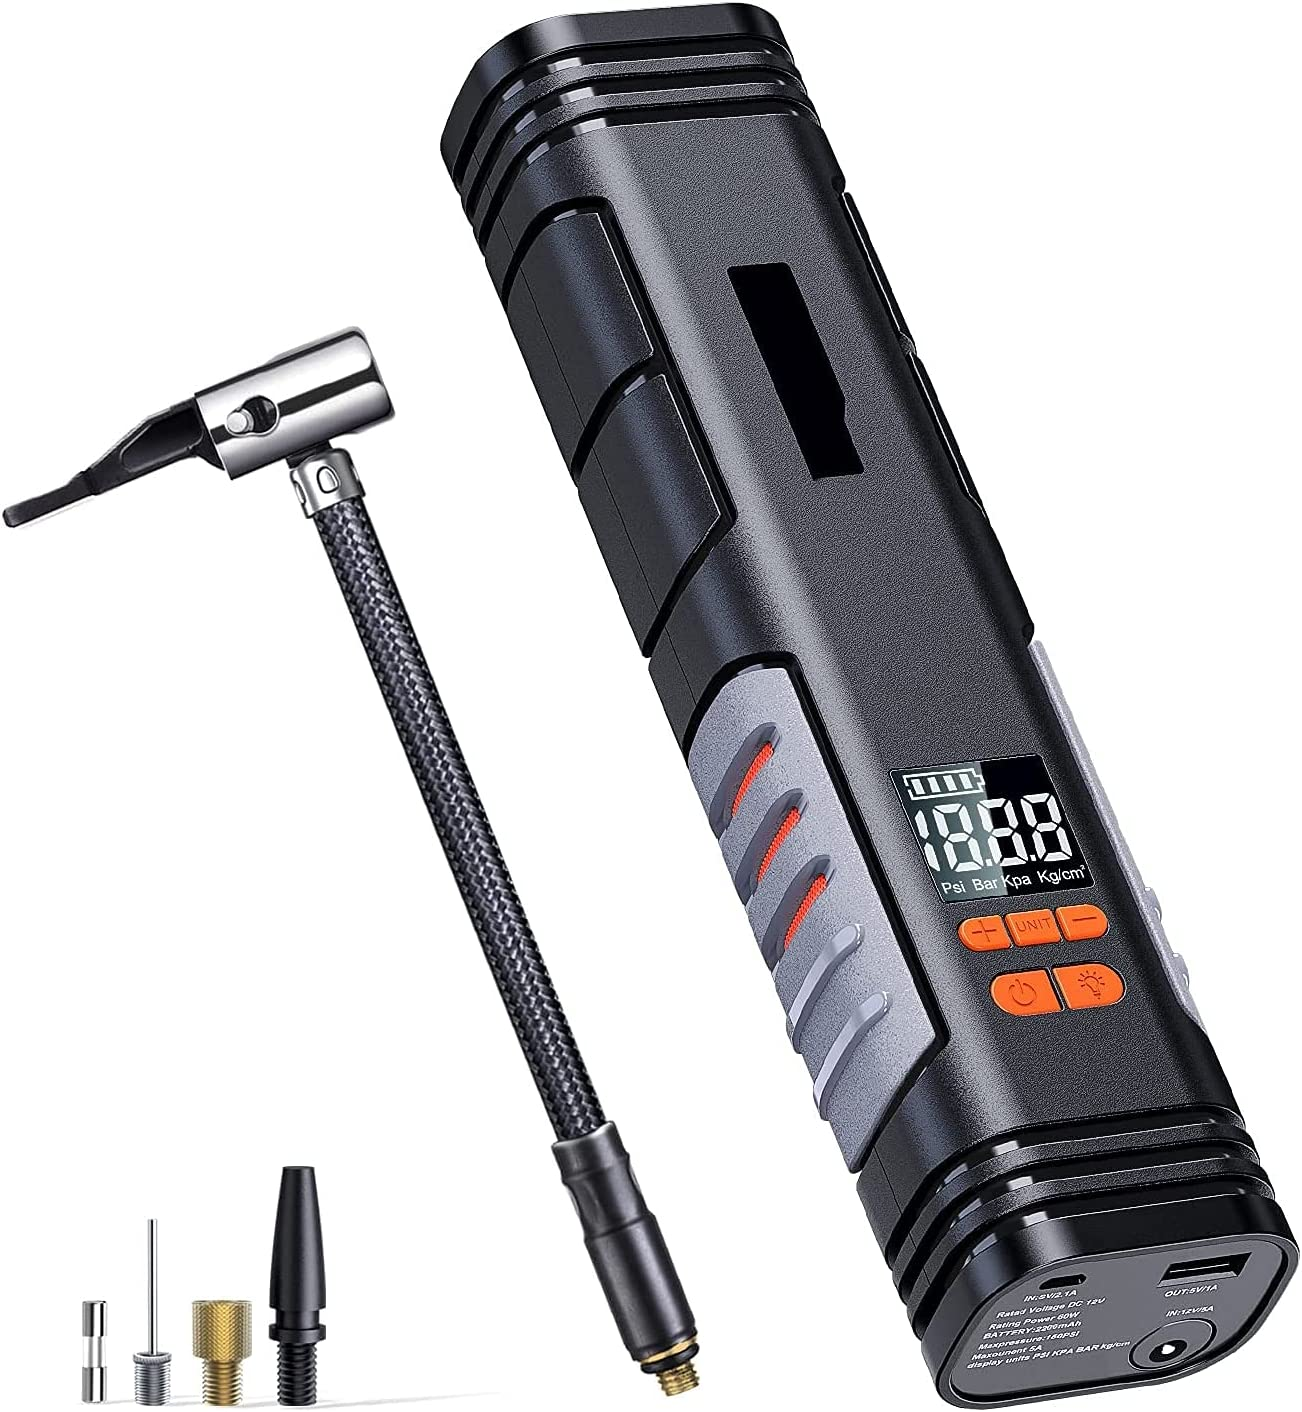 Tire Inflator Outlet ☆ Free Shipping X1 Max 46% OFF Rechargeable - Handheld Cordless